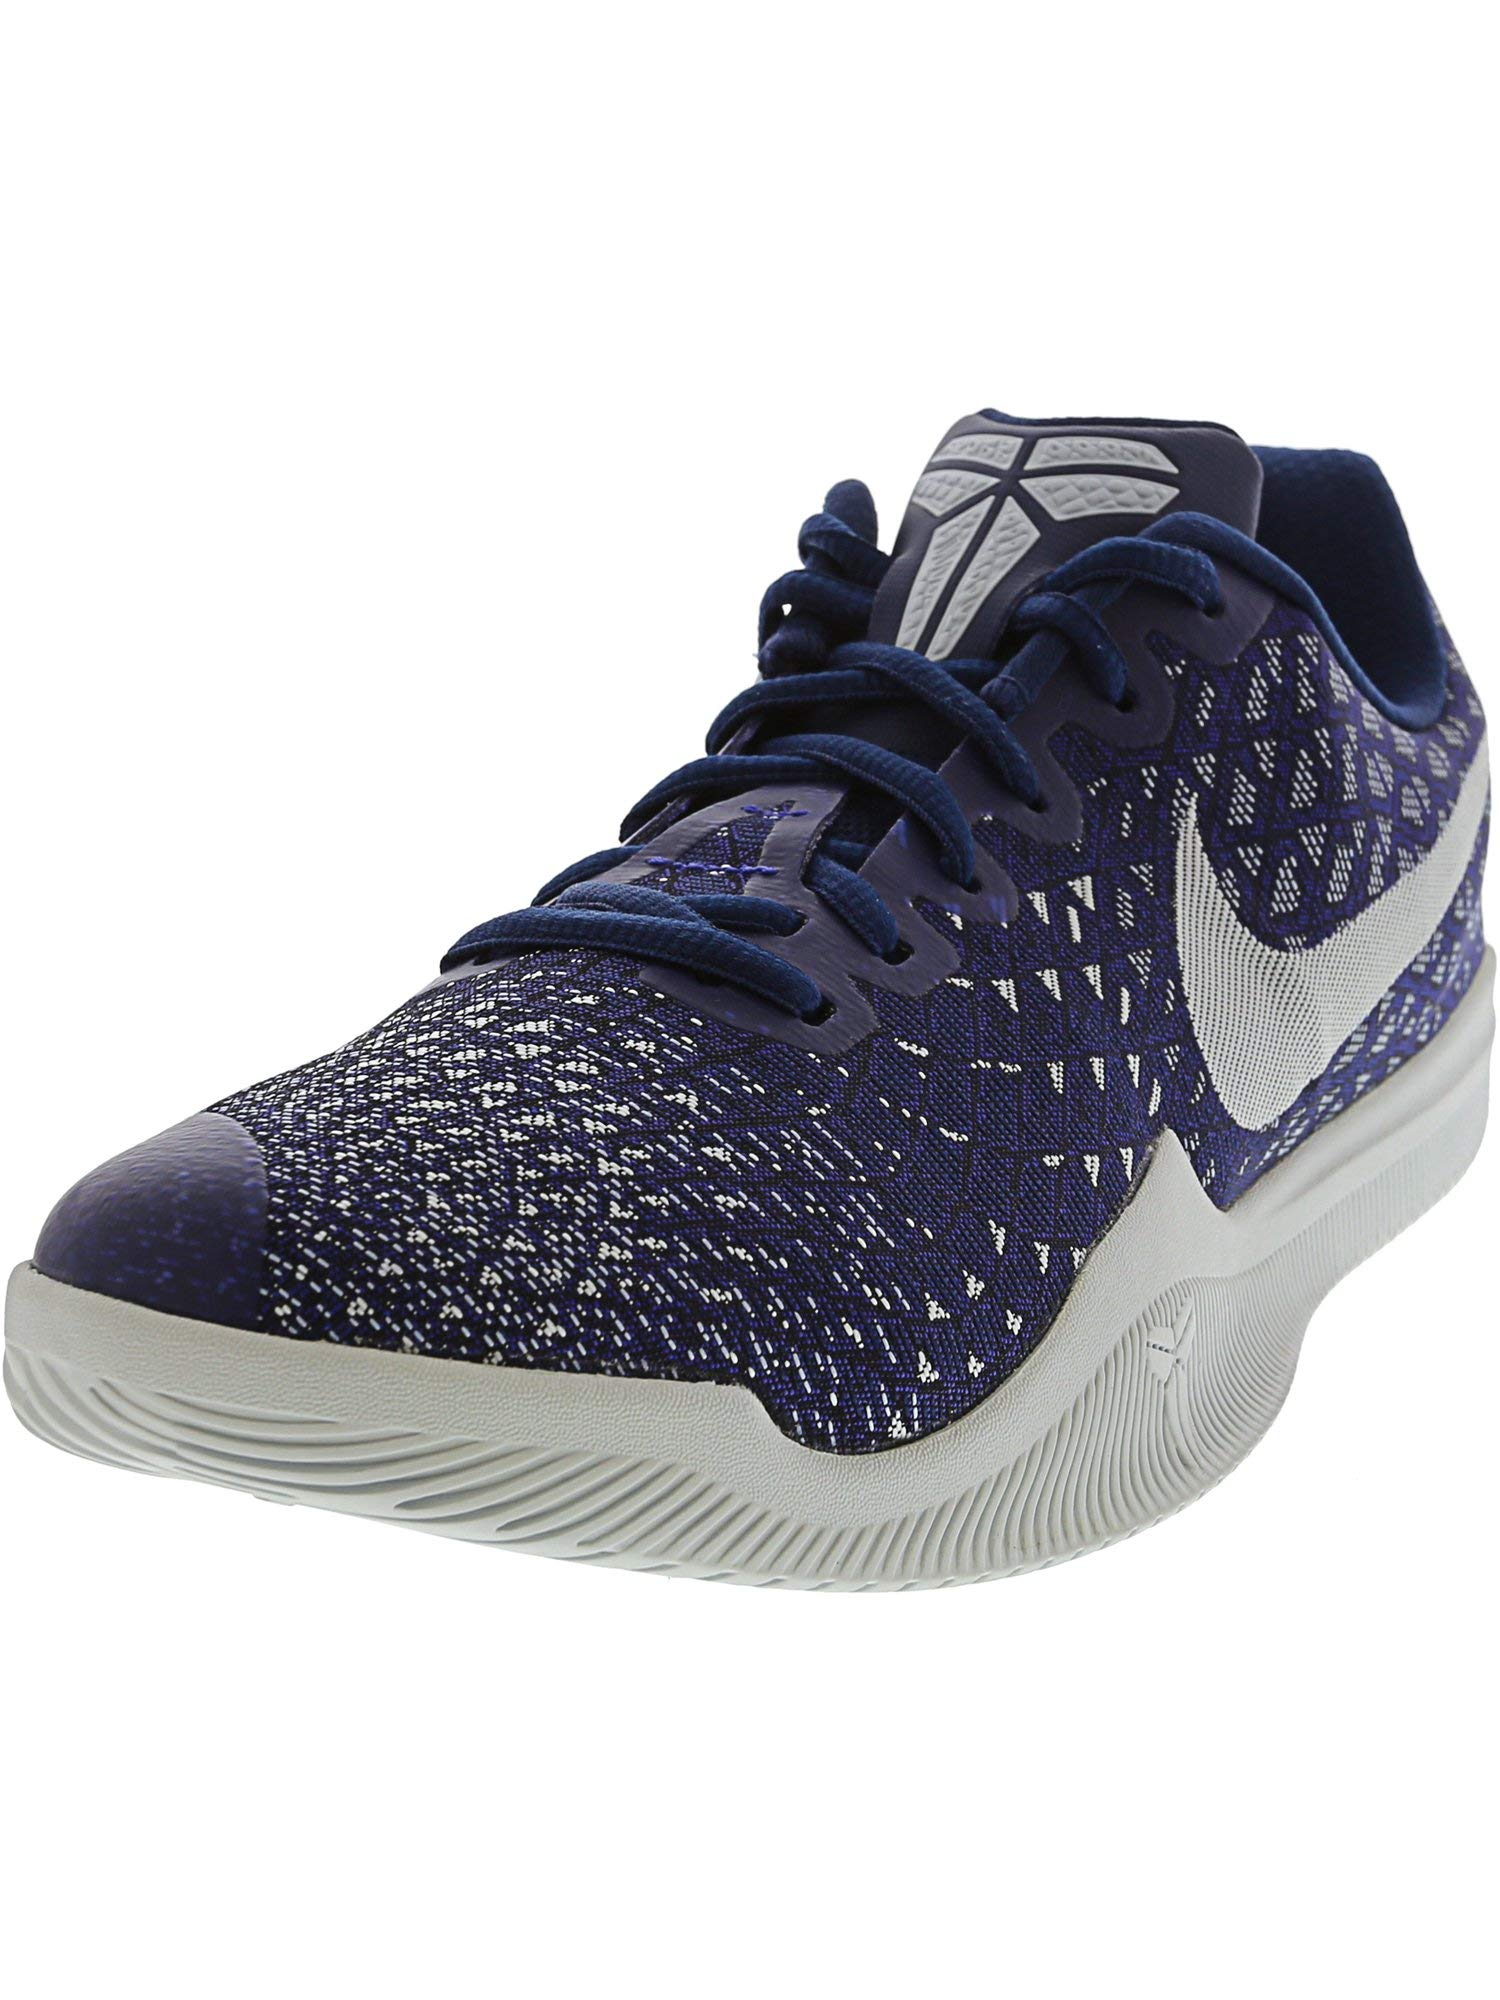 3c2c24a0621f53 Galleon - Nike Kobe Mamba Instinct Mens Basketball Shoes (9) Navy Blue